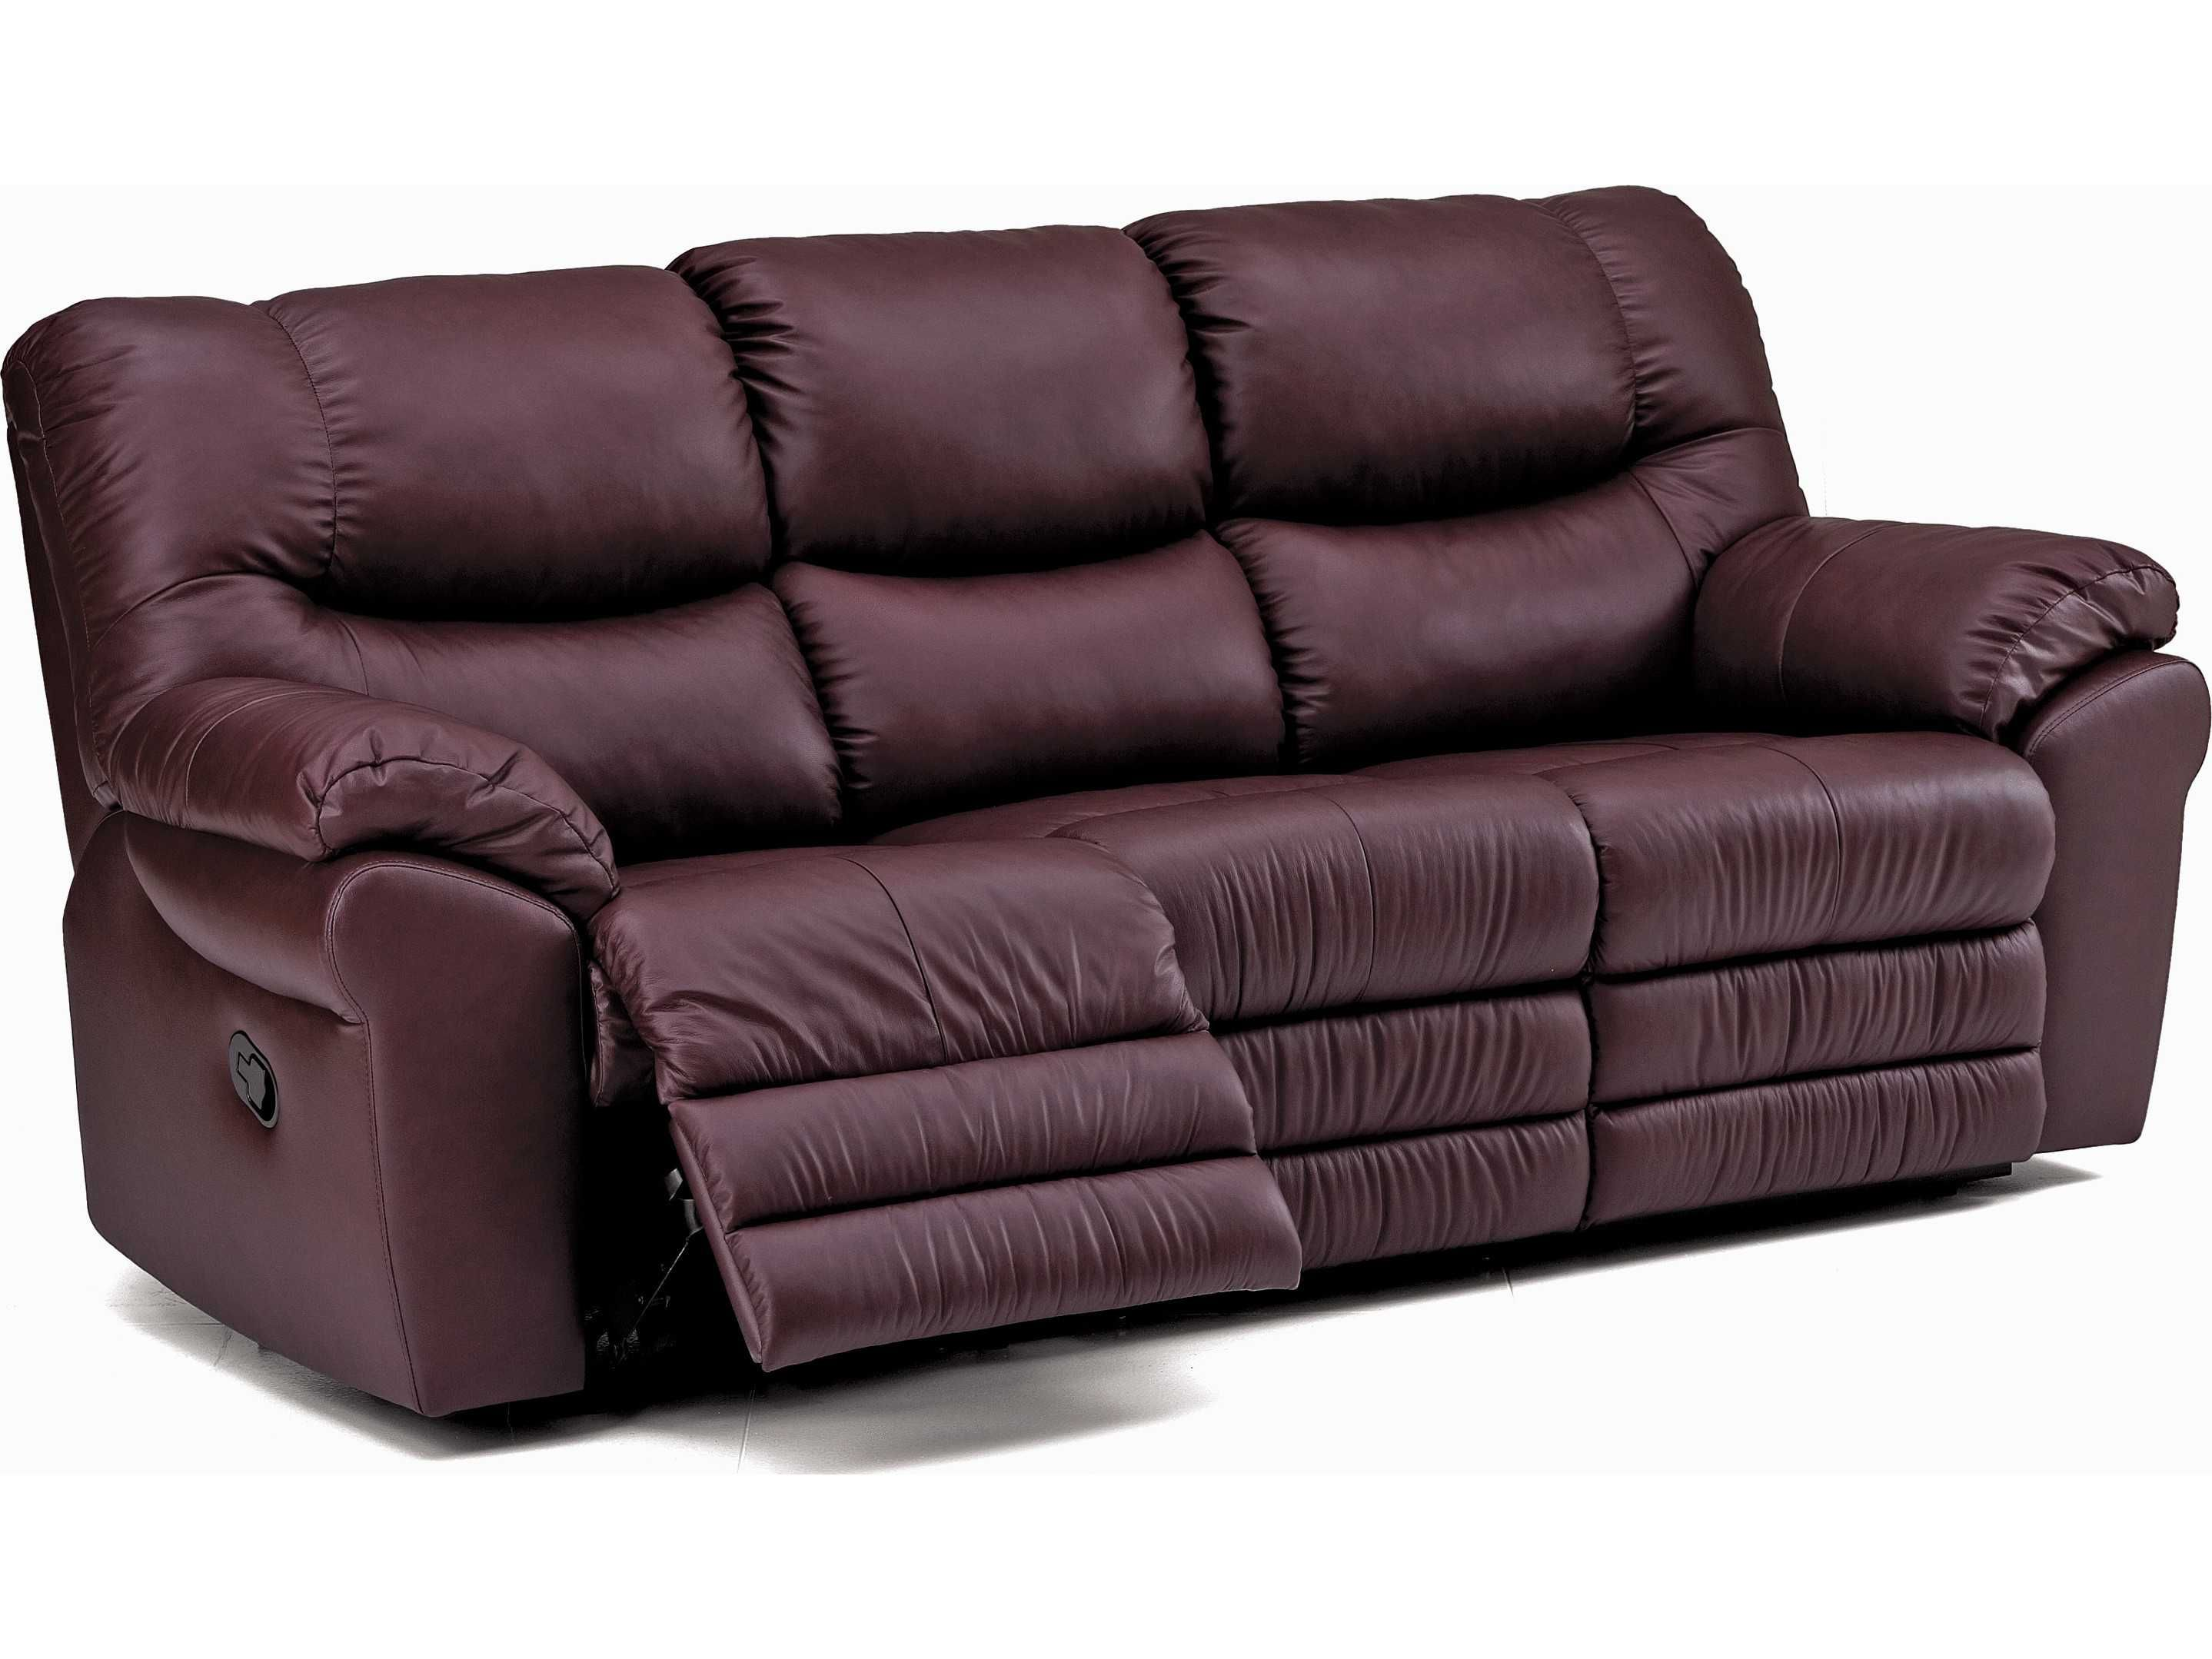 Recliner Sofa Set From Morning Coffee To Afternoon Nap Or Movie Nights Your Couch Is Always With You That Palliser Furniture Leather Furniture Reclining Sofa